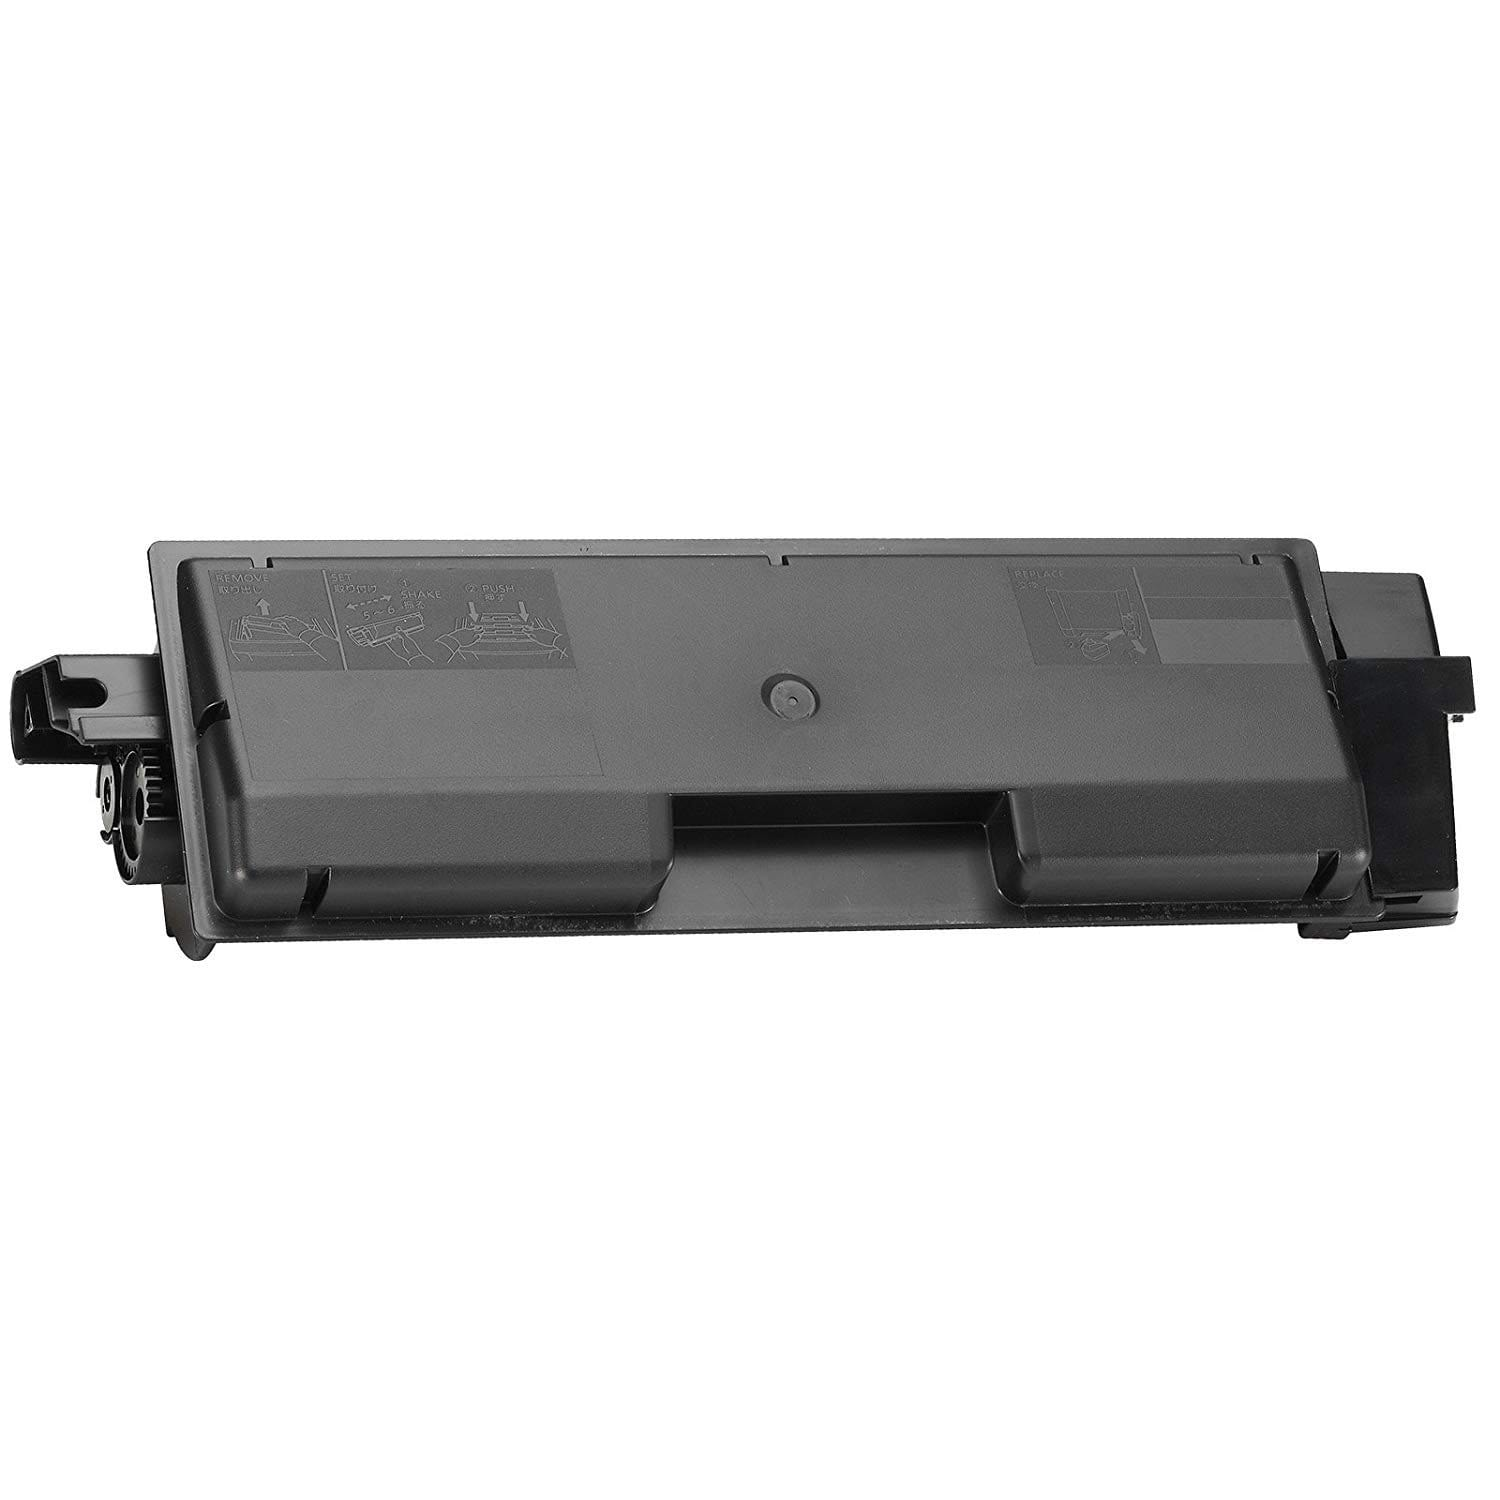 TK-592K Toner Cartridge - Kyocera Mita Compatible (Black)